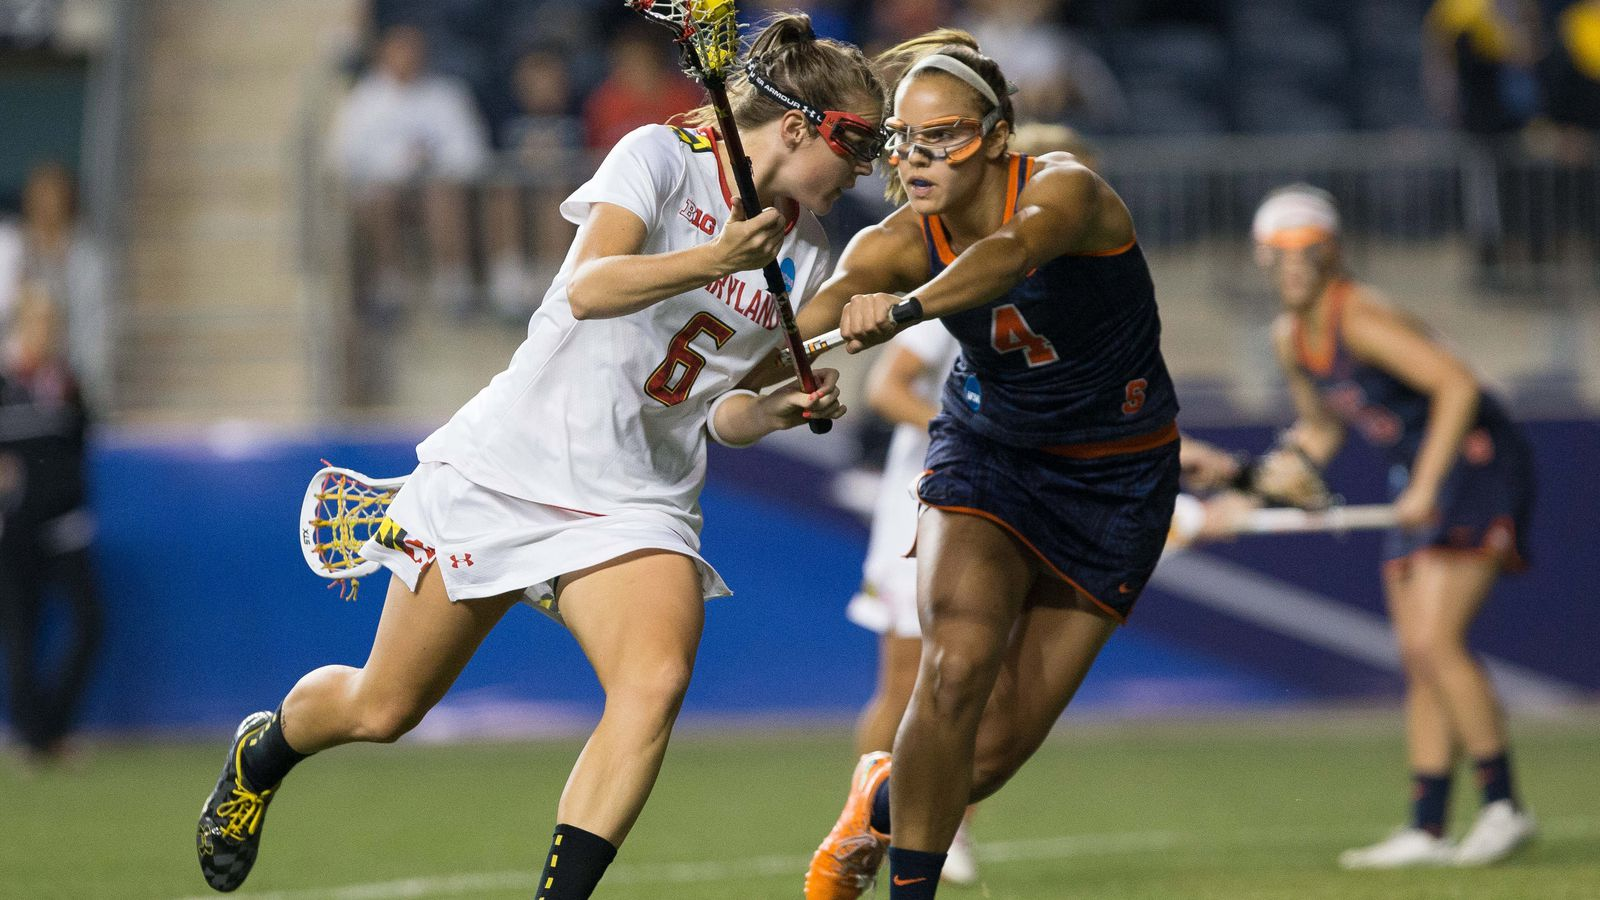 syracuse womens lacrosse head coaches preview their